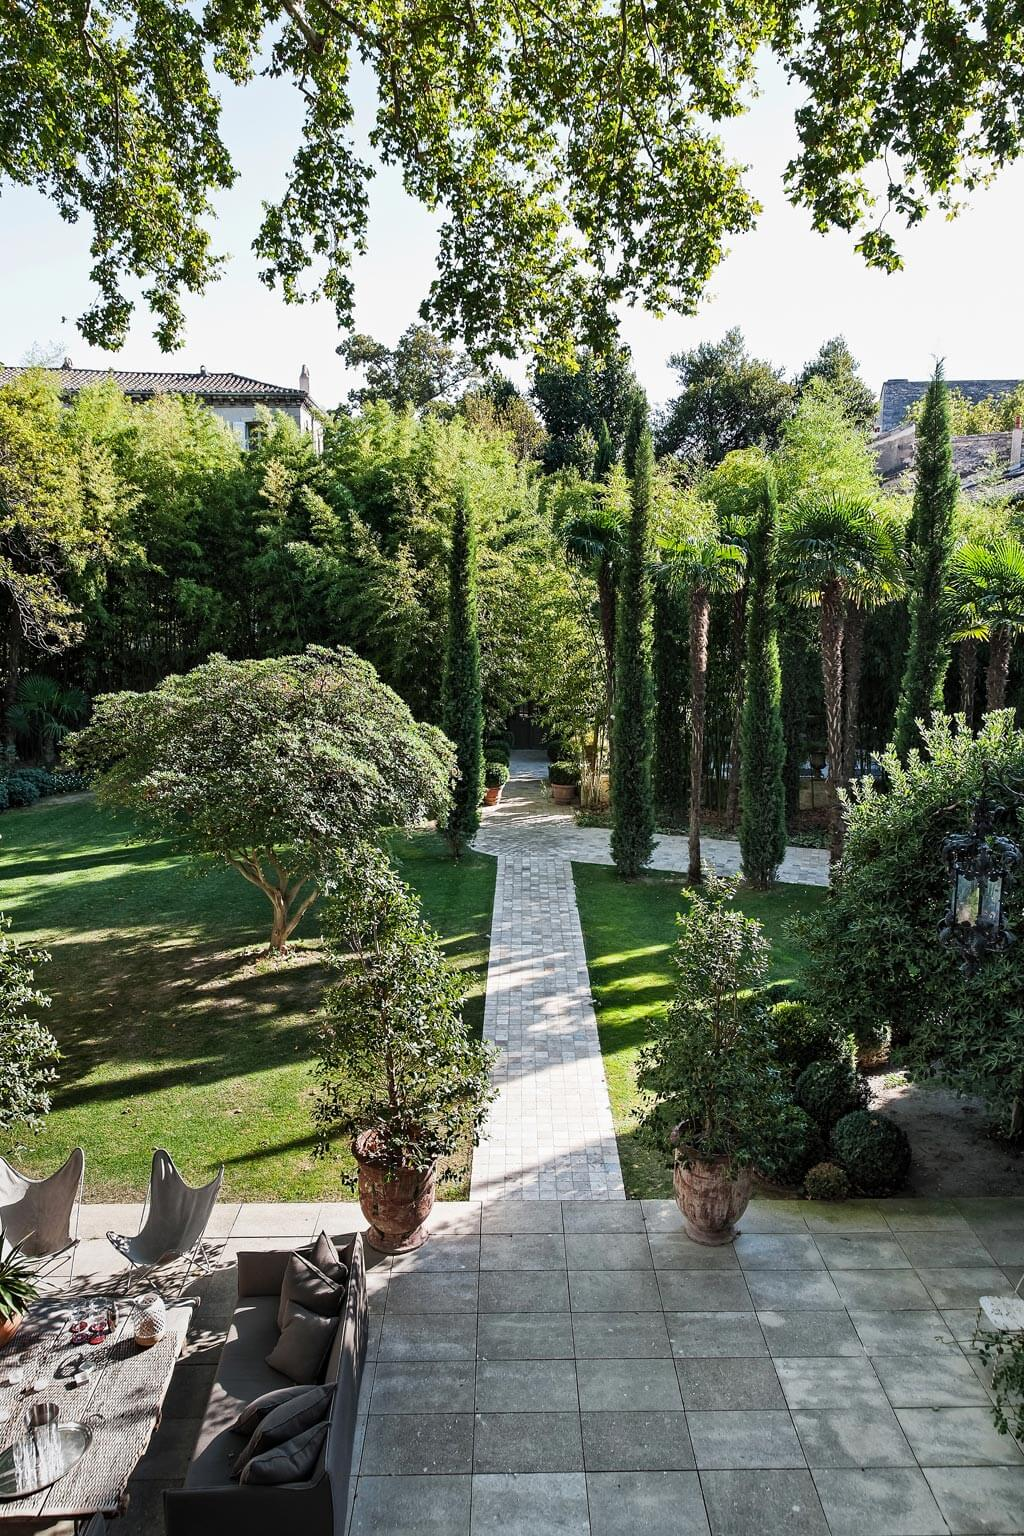 Cypress magic. Beautiful French country garden inspiration from a luxurious property in the South of France. Breathtaking 19th century restored French chateau with largest private garden in Avignon. Avignon Hôtel Particulier. Photo: Haven In.